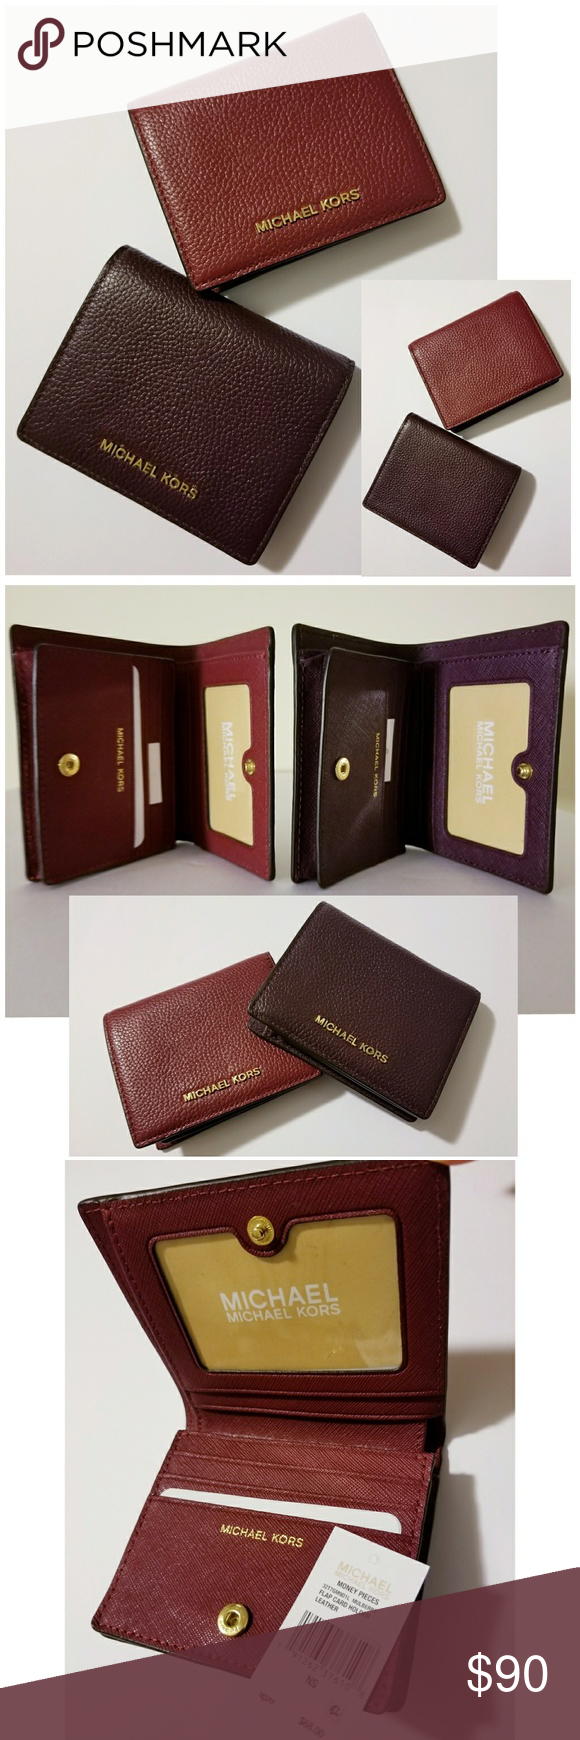 0620bbacdce862 Michael Kors Flap Card Case Wallet Bundle Michael Kors Money Pieces Flap  Cardholder Wallets • MULBERRY